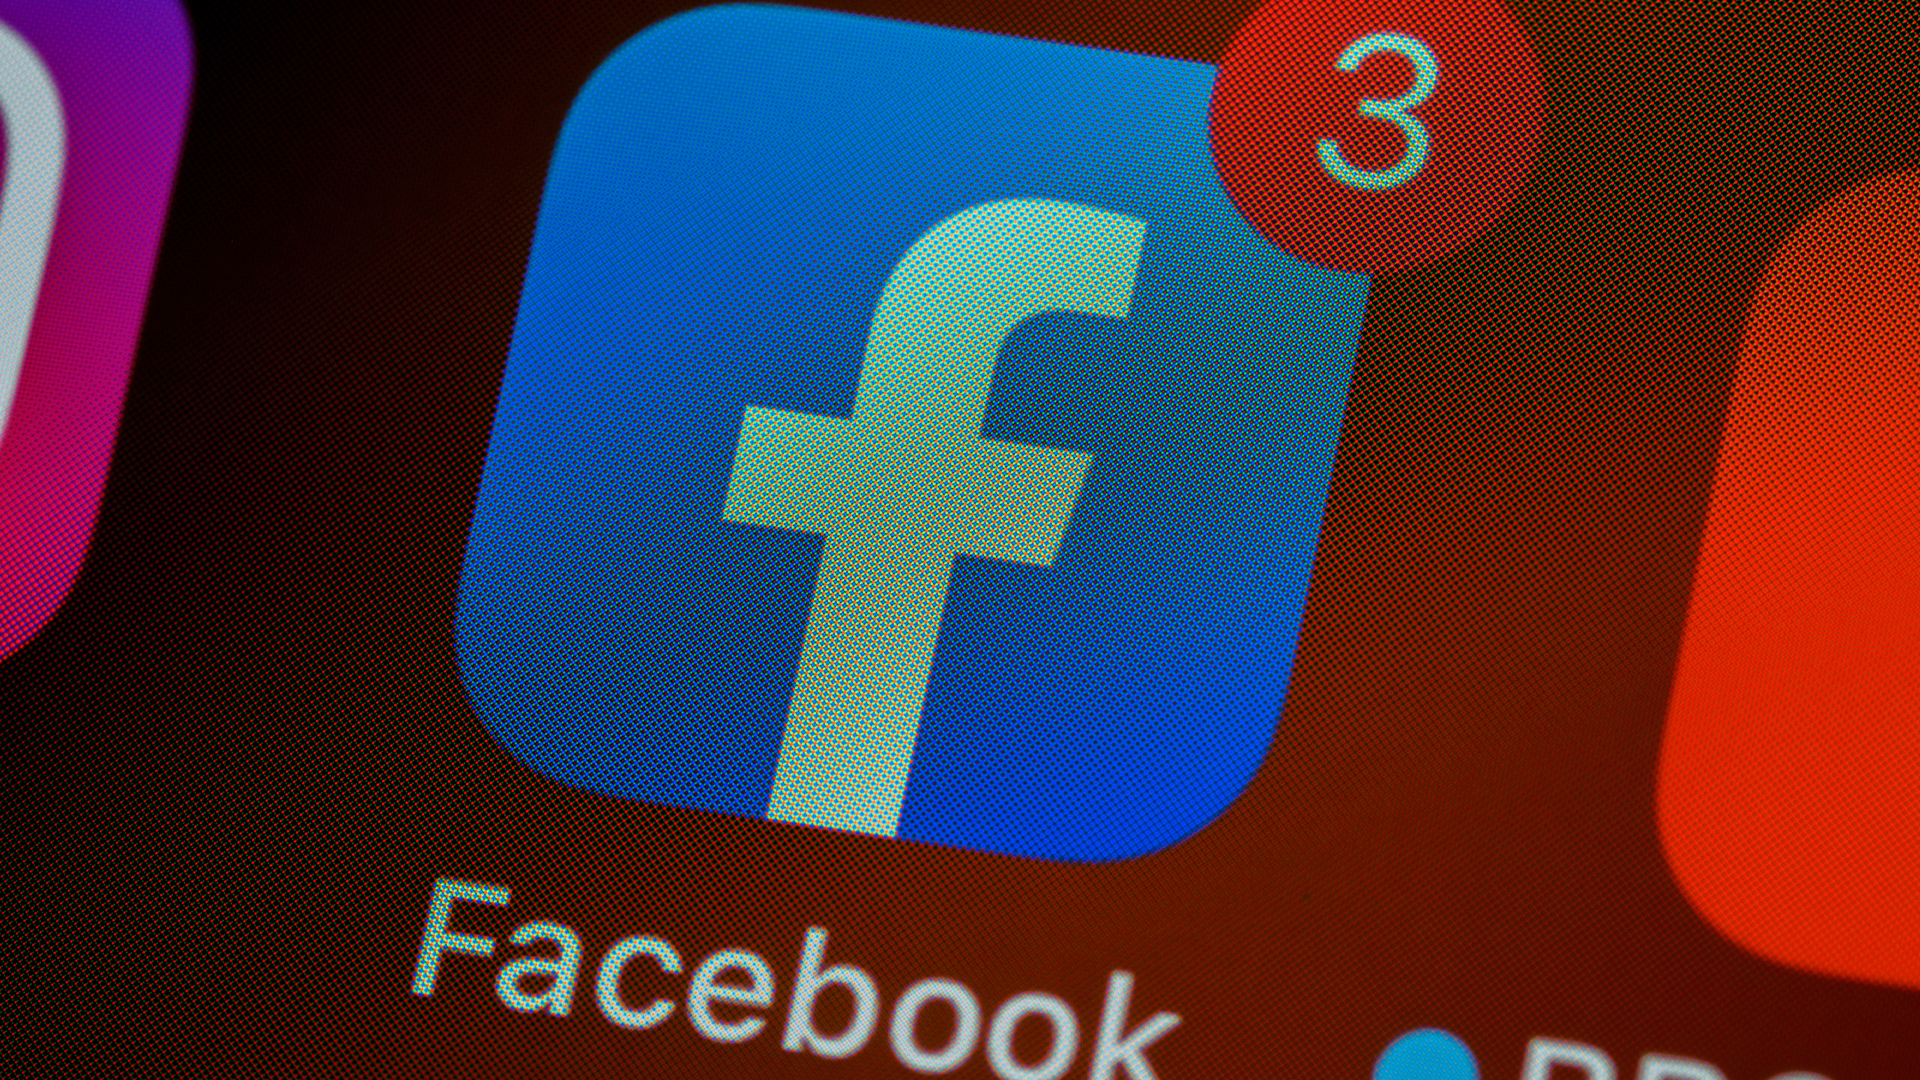 Philippine Police, Military Disown Fake Facebook Accounts